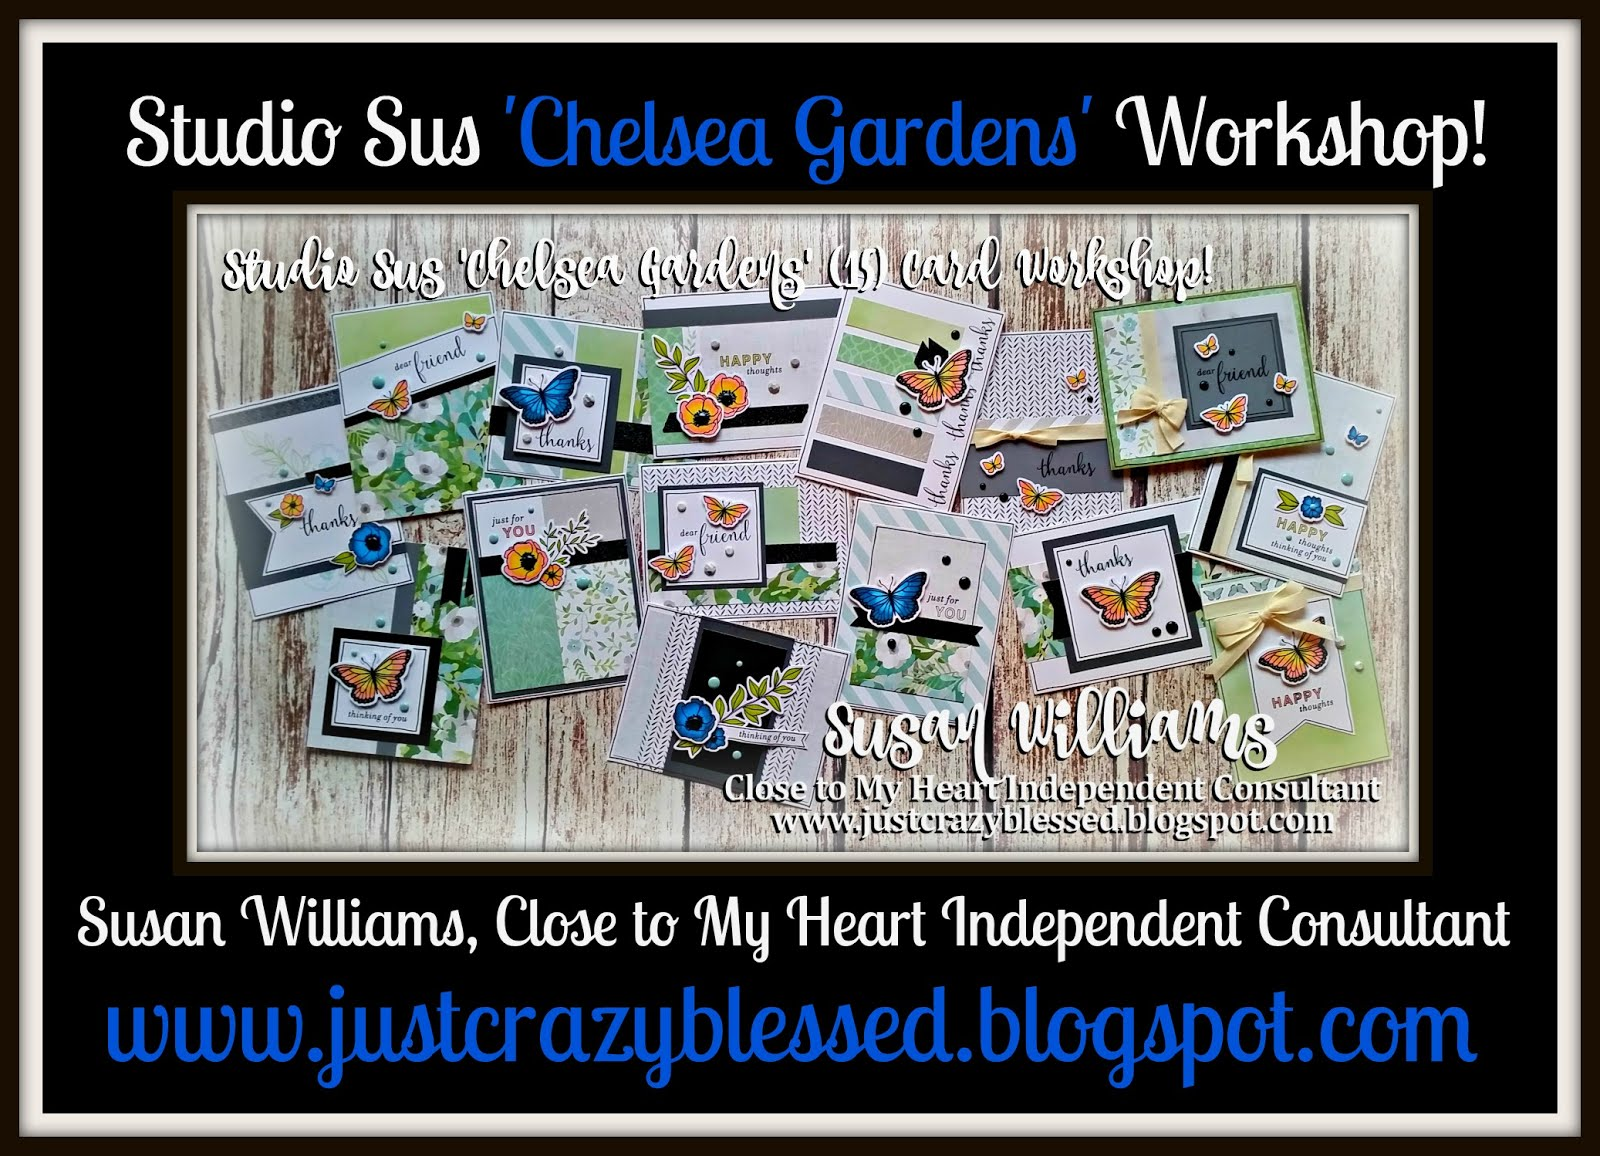 'Chelsea Gardens' Cardmaking Workshop!